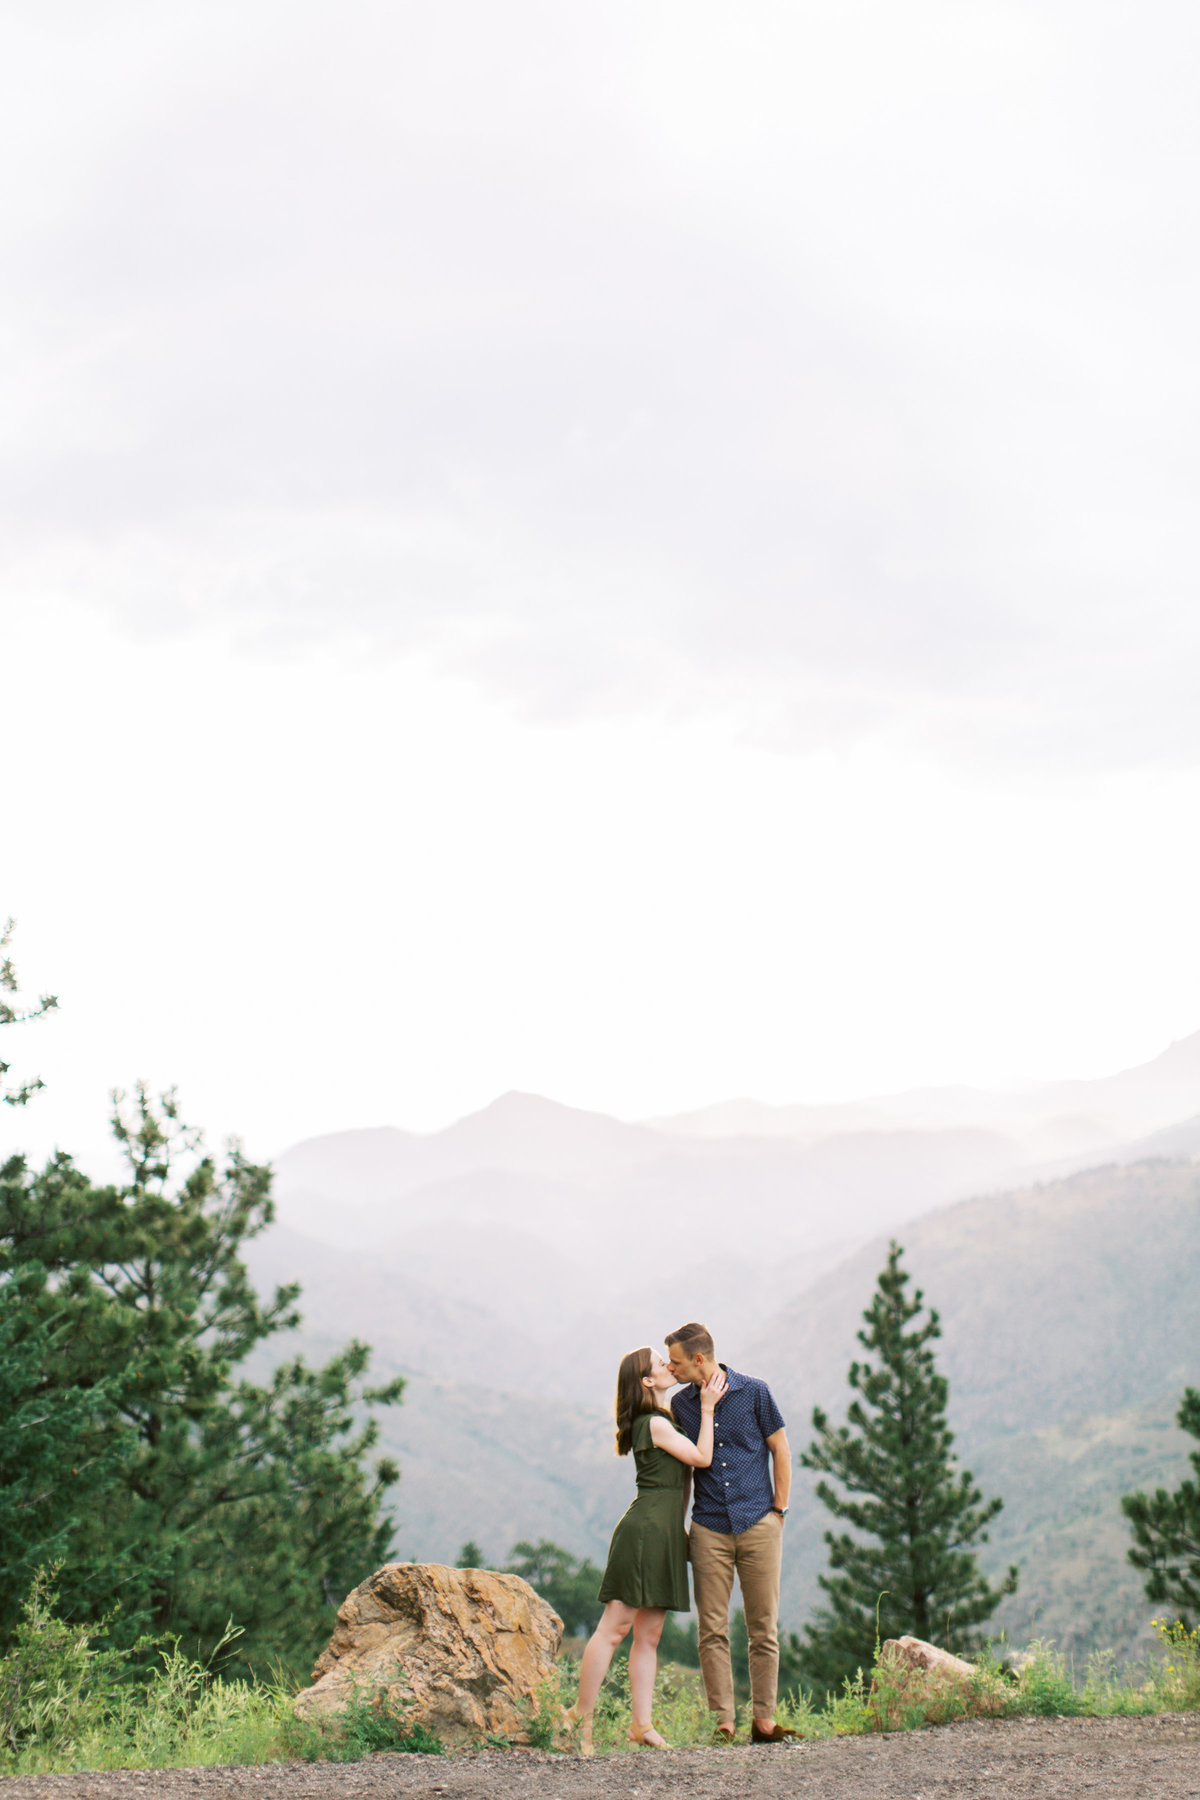 KristinPatrick_Engagement_July312019_137